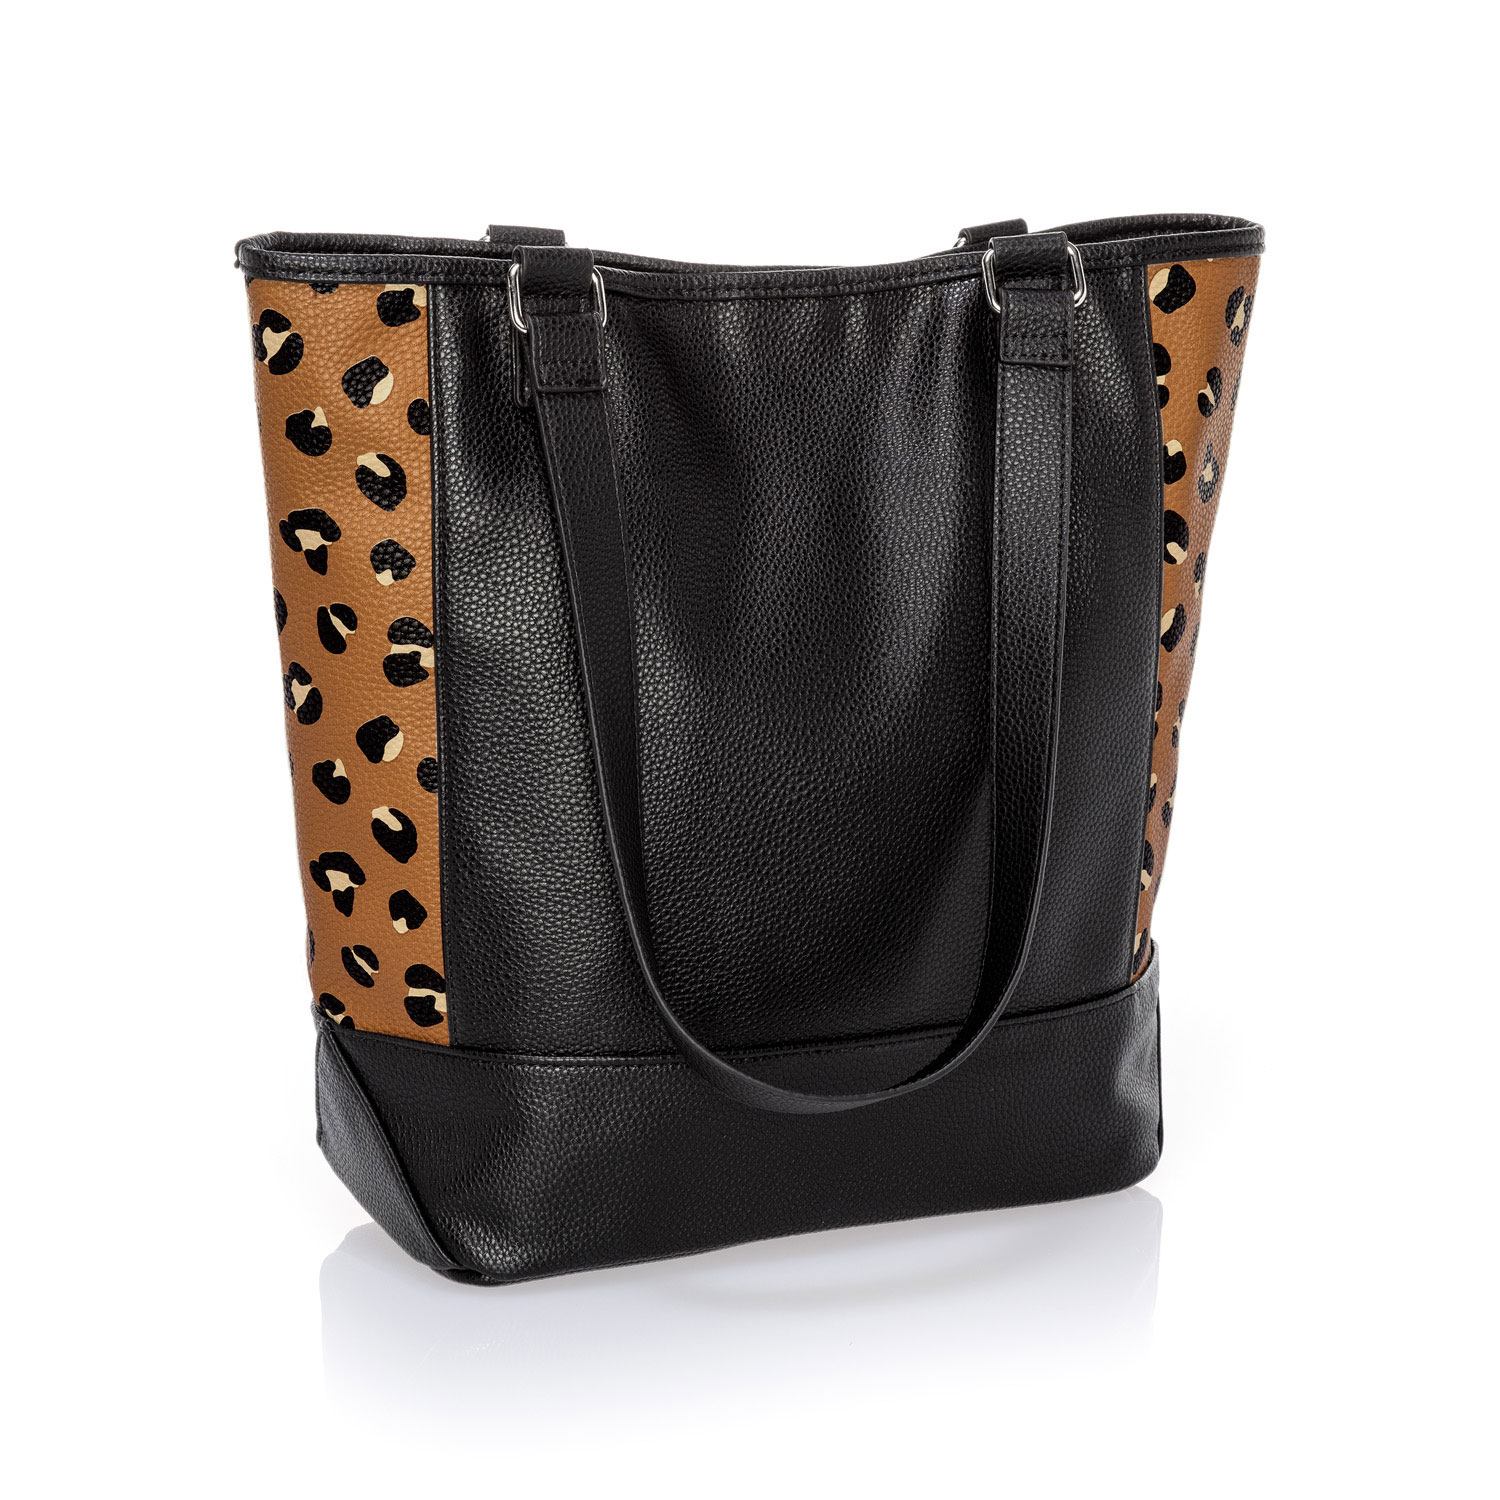 b3802e463d68 Black Beauty Pebble - Colorblock Tote - Thirty-One Gifts